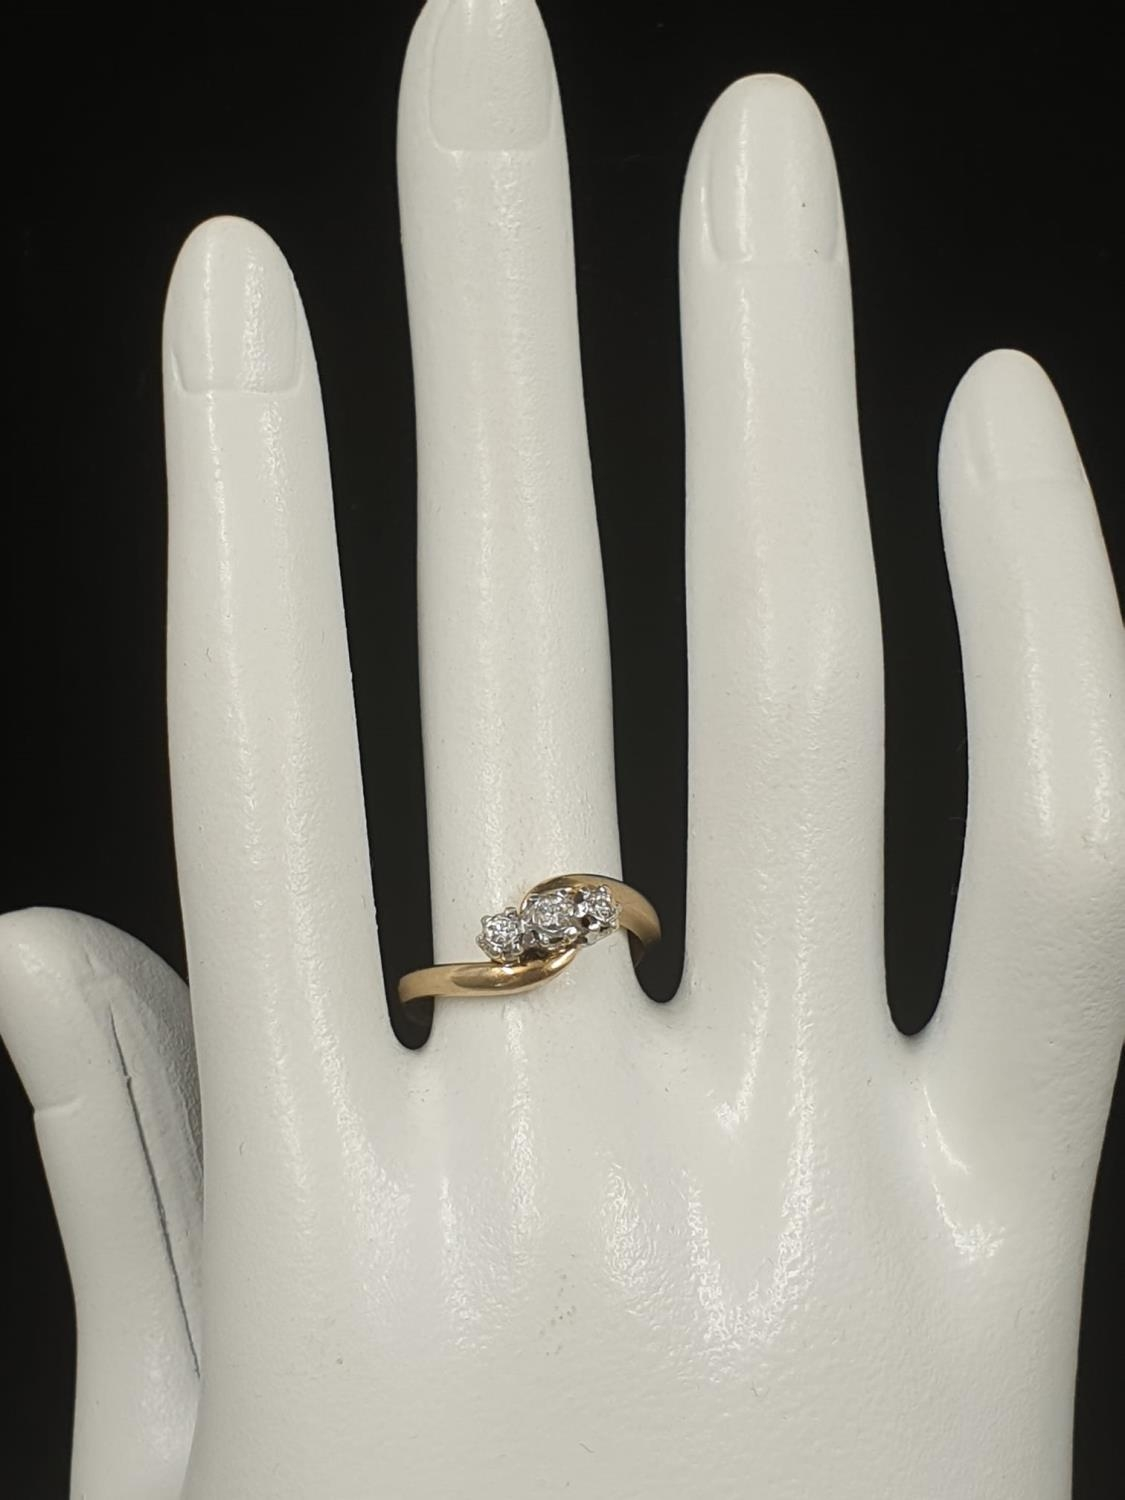 9K YELLOW GOLD VINTAGE 3 STONE DIAMOND TWIST RING APPROX 0.10CT DIAMONDS WEIGHT 3G SIZE L1/2 - Image 7 of 7